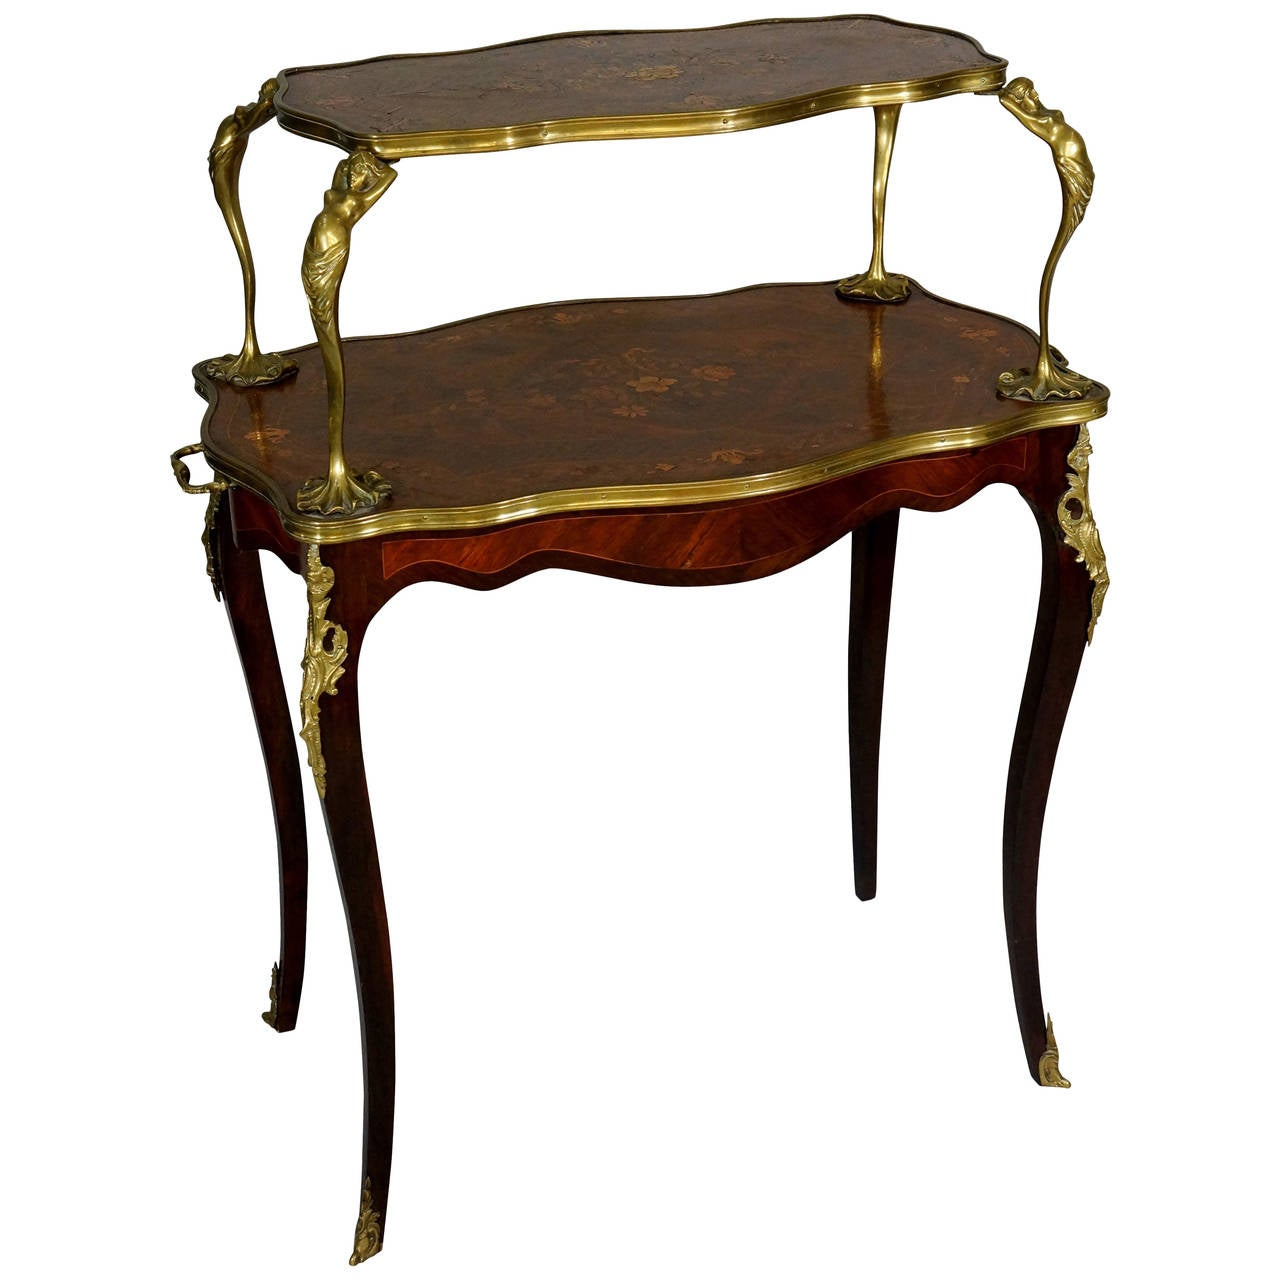 a fine louis xv style ormolu mounted marquetry two tier